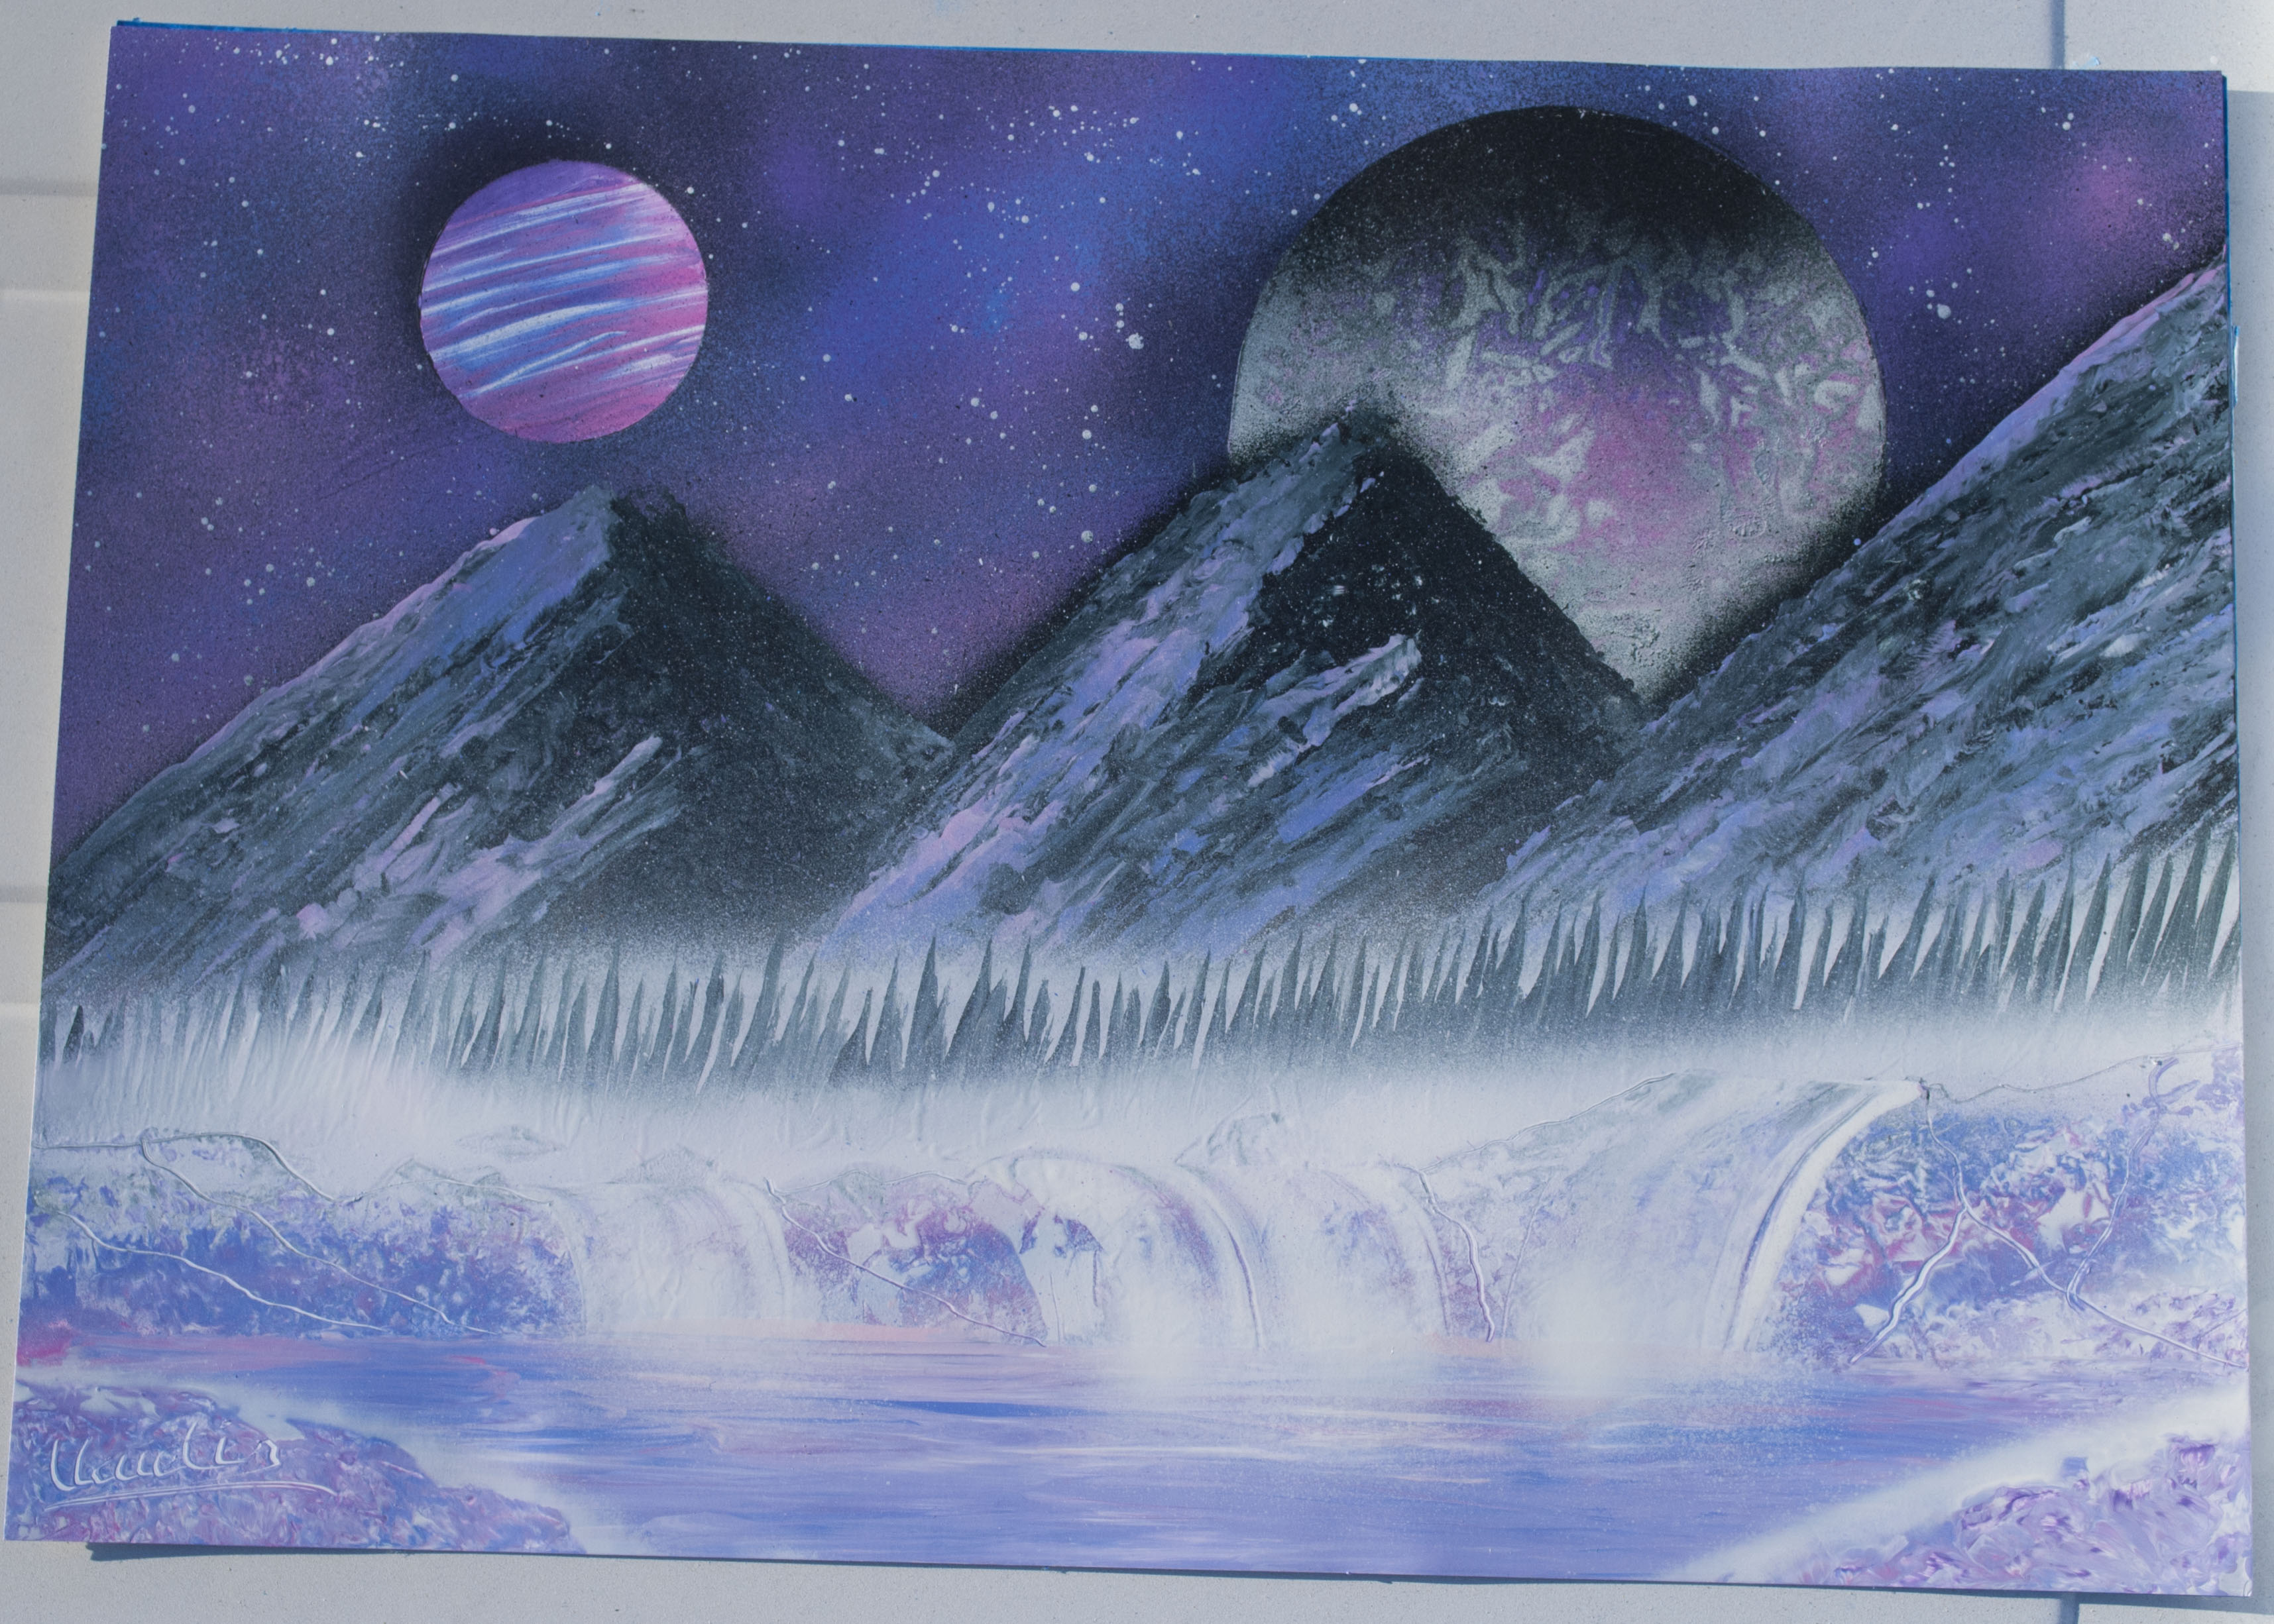 Purple landscape spray paint art by Ucuetis